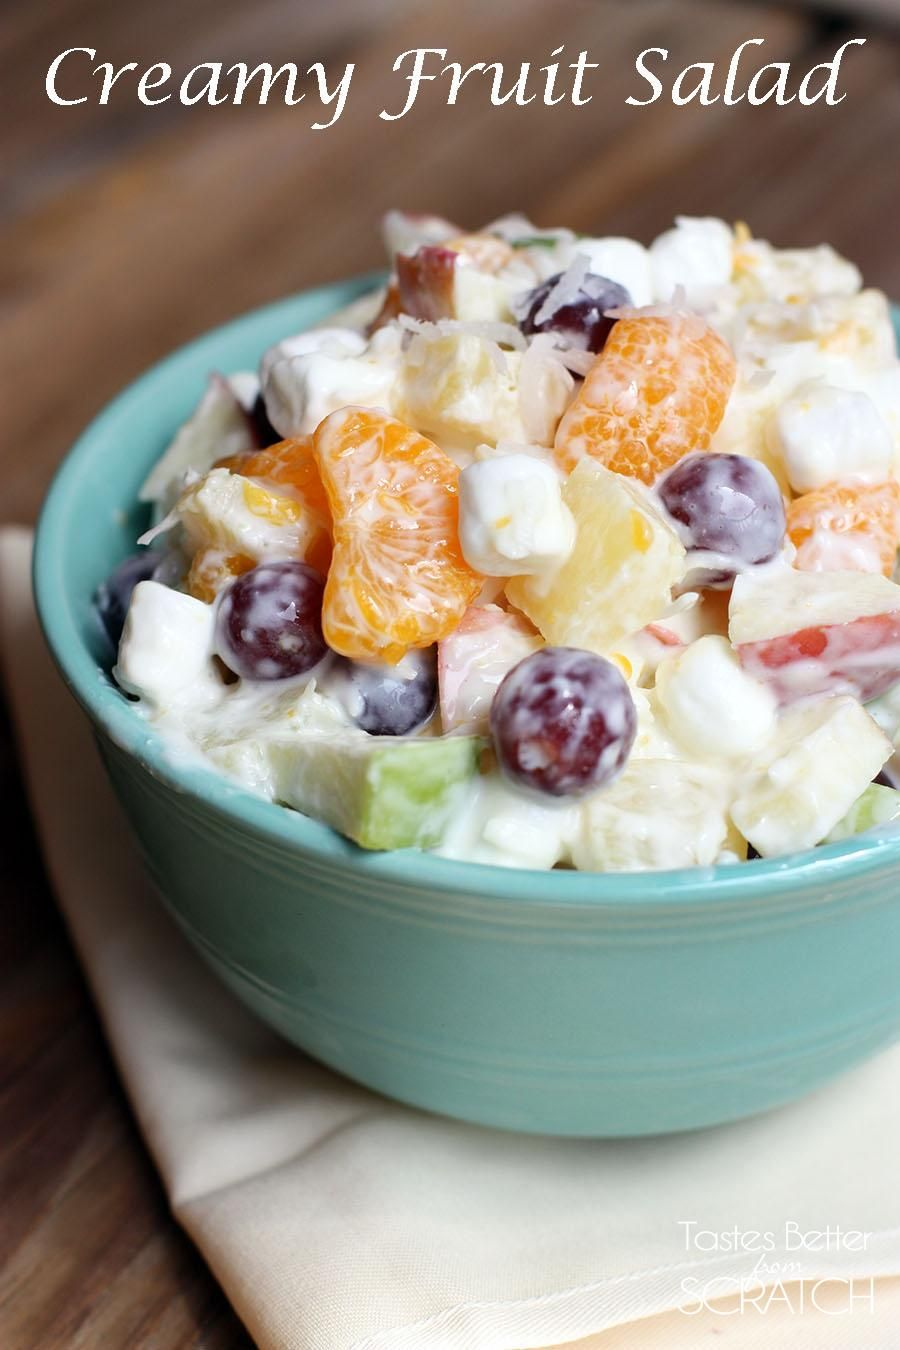 Creamy Fruit Salad Recipe Creamy Fruit Salads Fruit Salad Recipes Fruit Dishes